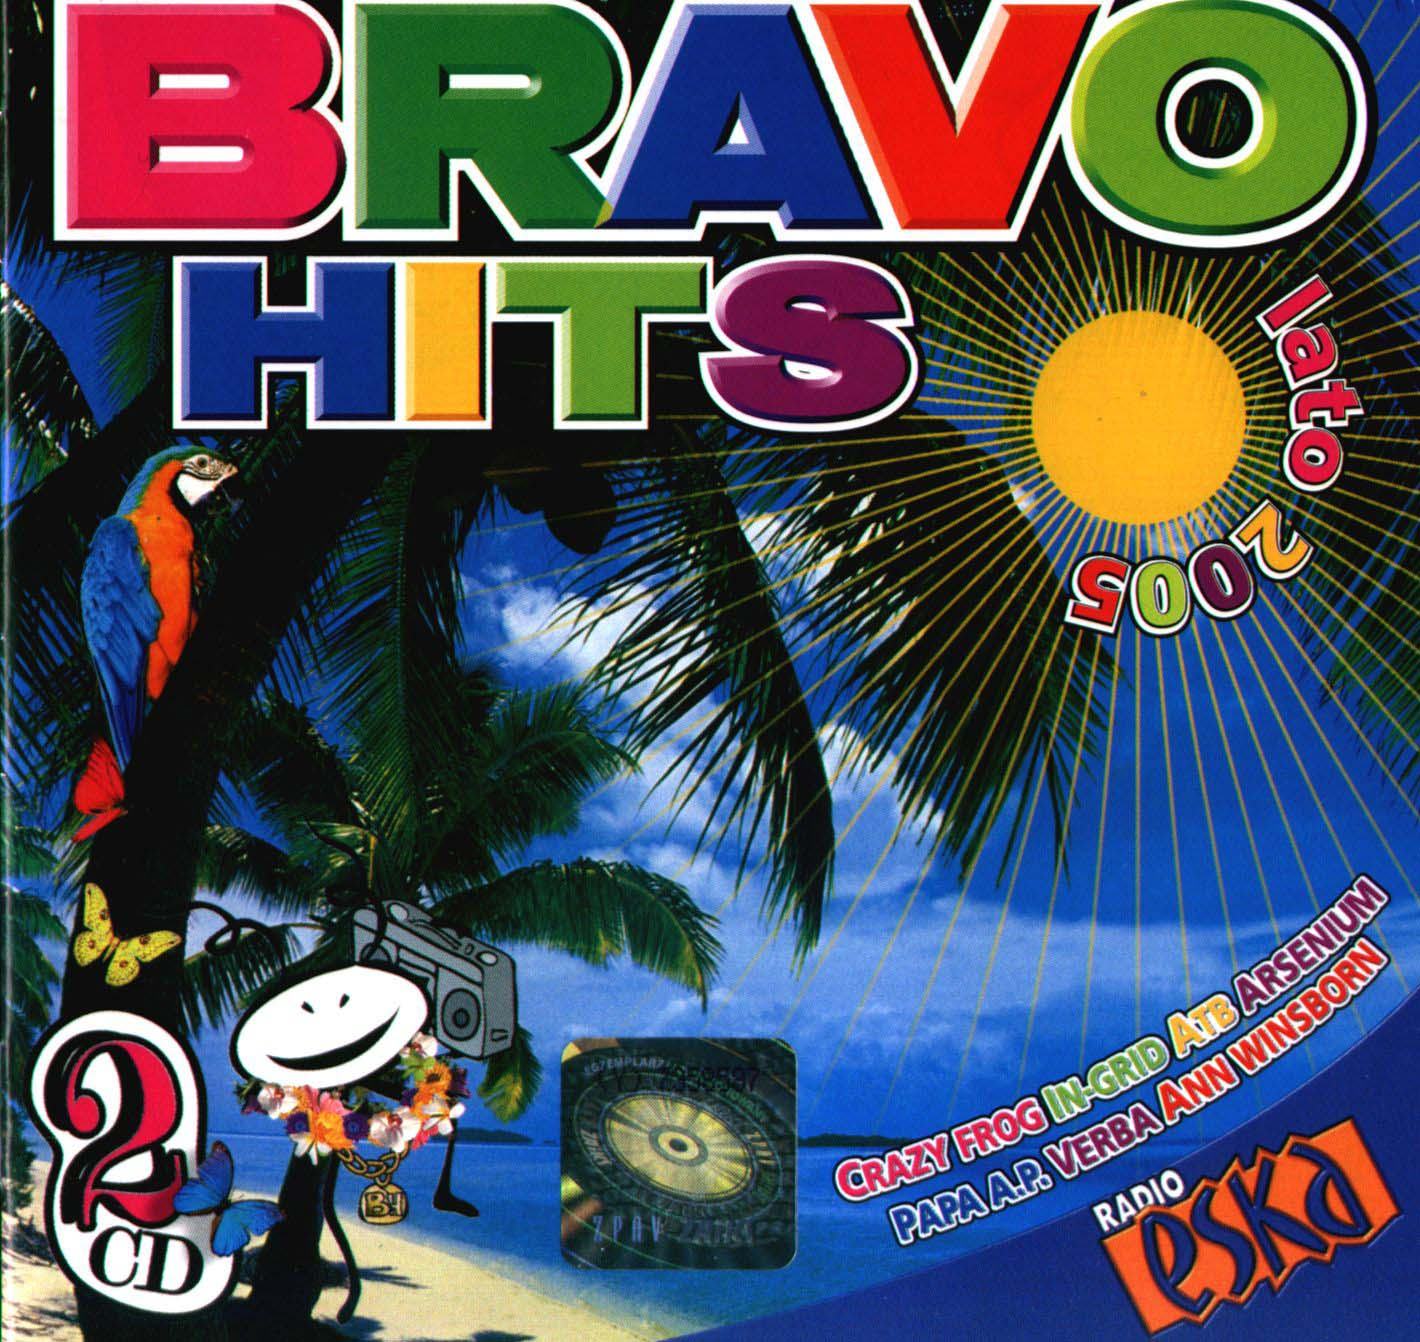 Bravo Hits Lato 2005 Poland Front Cd Covers Cover Century